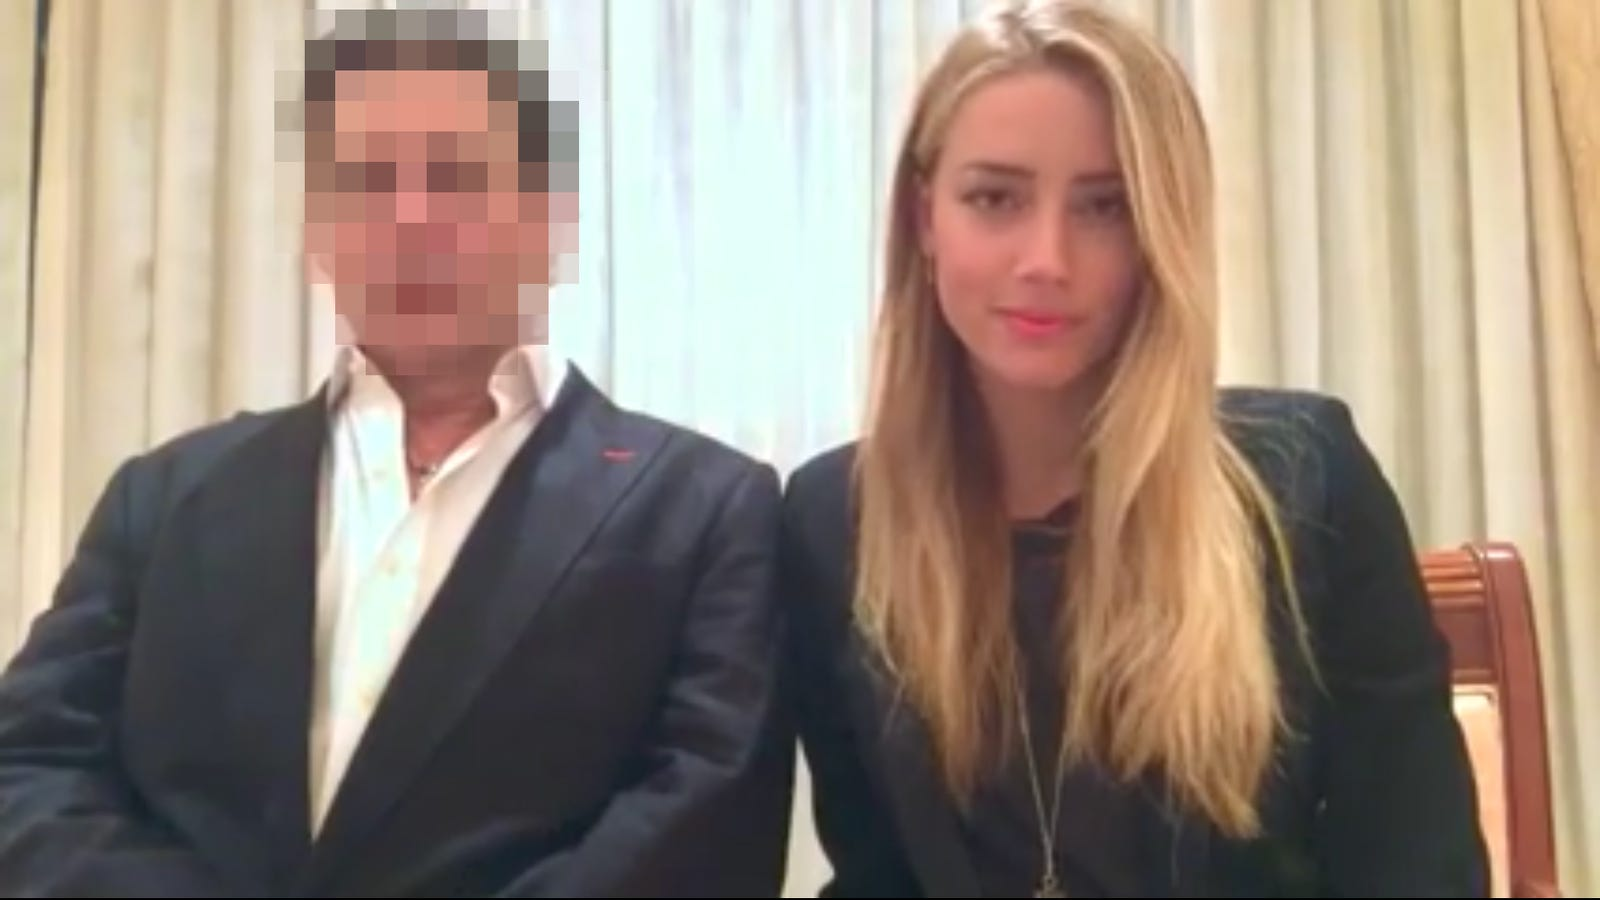 It Took Two Years, But Amber Heard Just Emerged Victorious From Her Feud With Australia